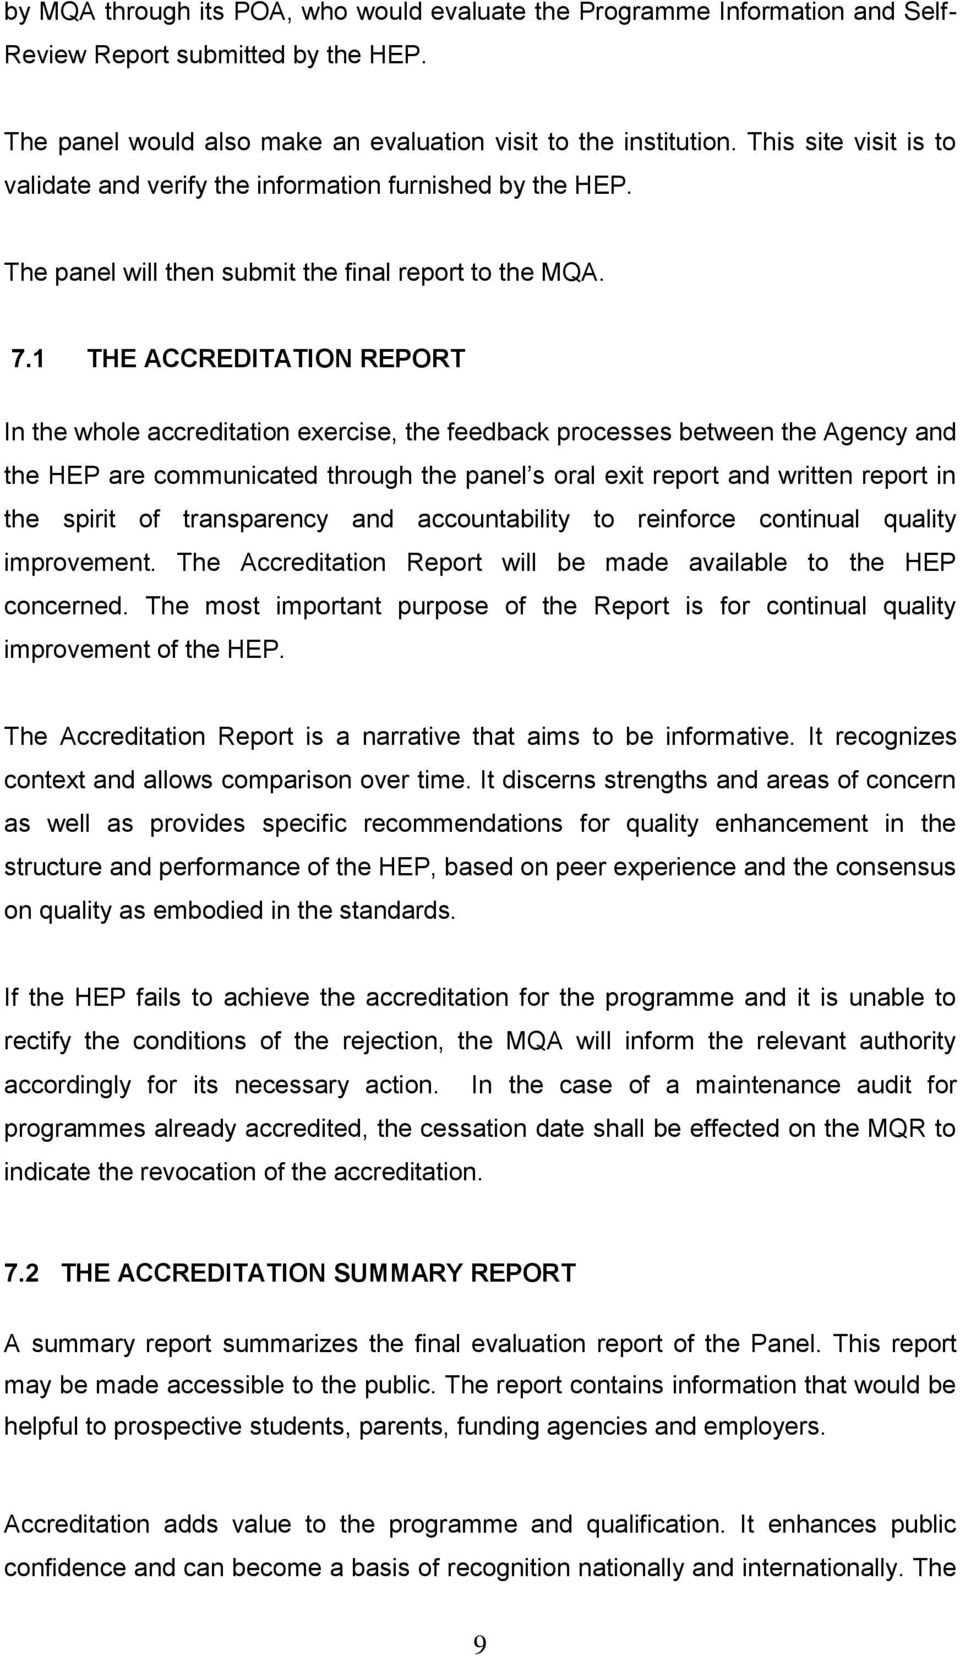 1 THE ACCREDITATION REPORT In the whle accreditatin exercise, the feedback prcesses between the Agency and the HEP are cmmunicated thrugh the panel s ral exit reprt and written reprt in the spirit f